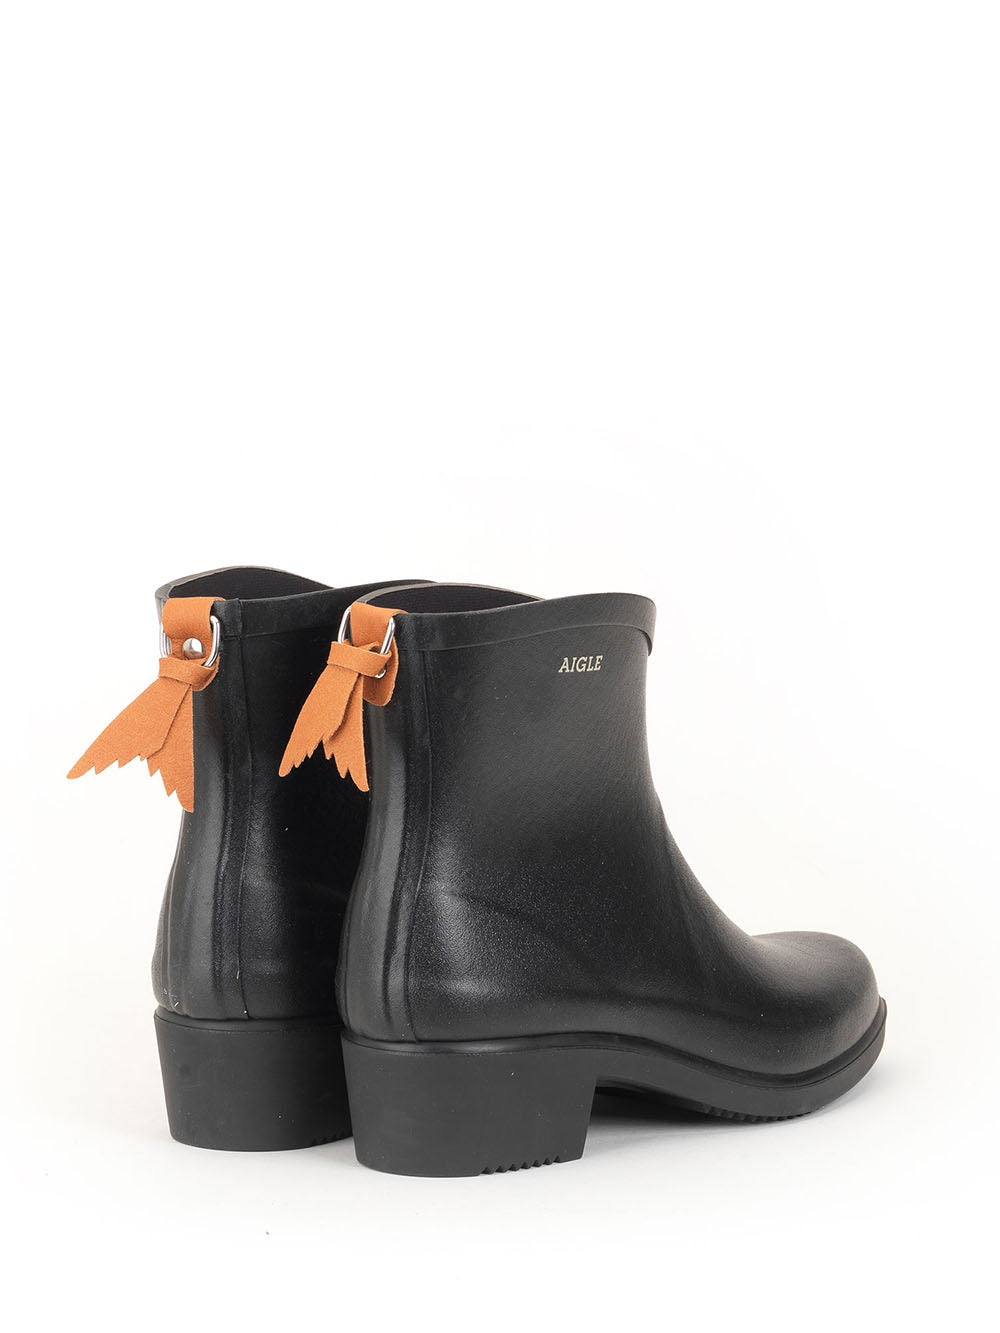 aigle short rain boot in black